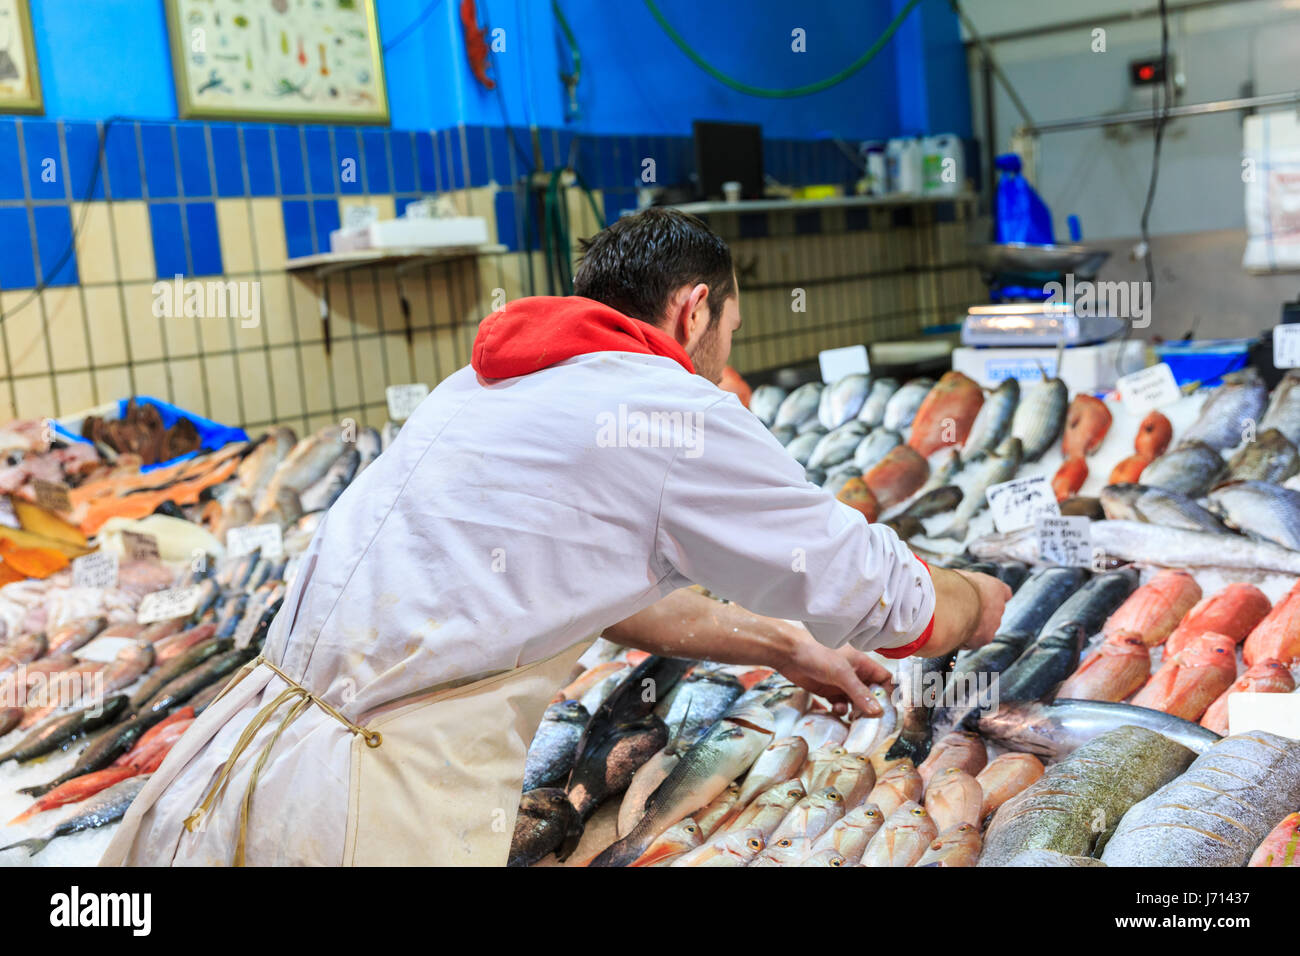 Fish monger arranging fresh fish on ice, displayed for sale - Stock Image